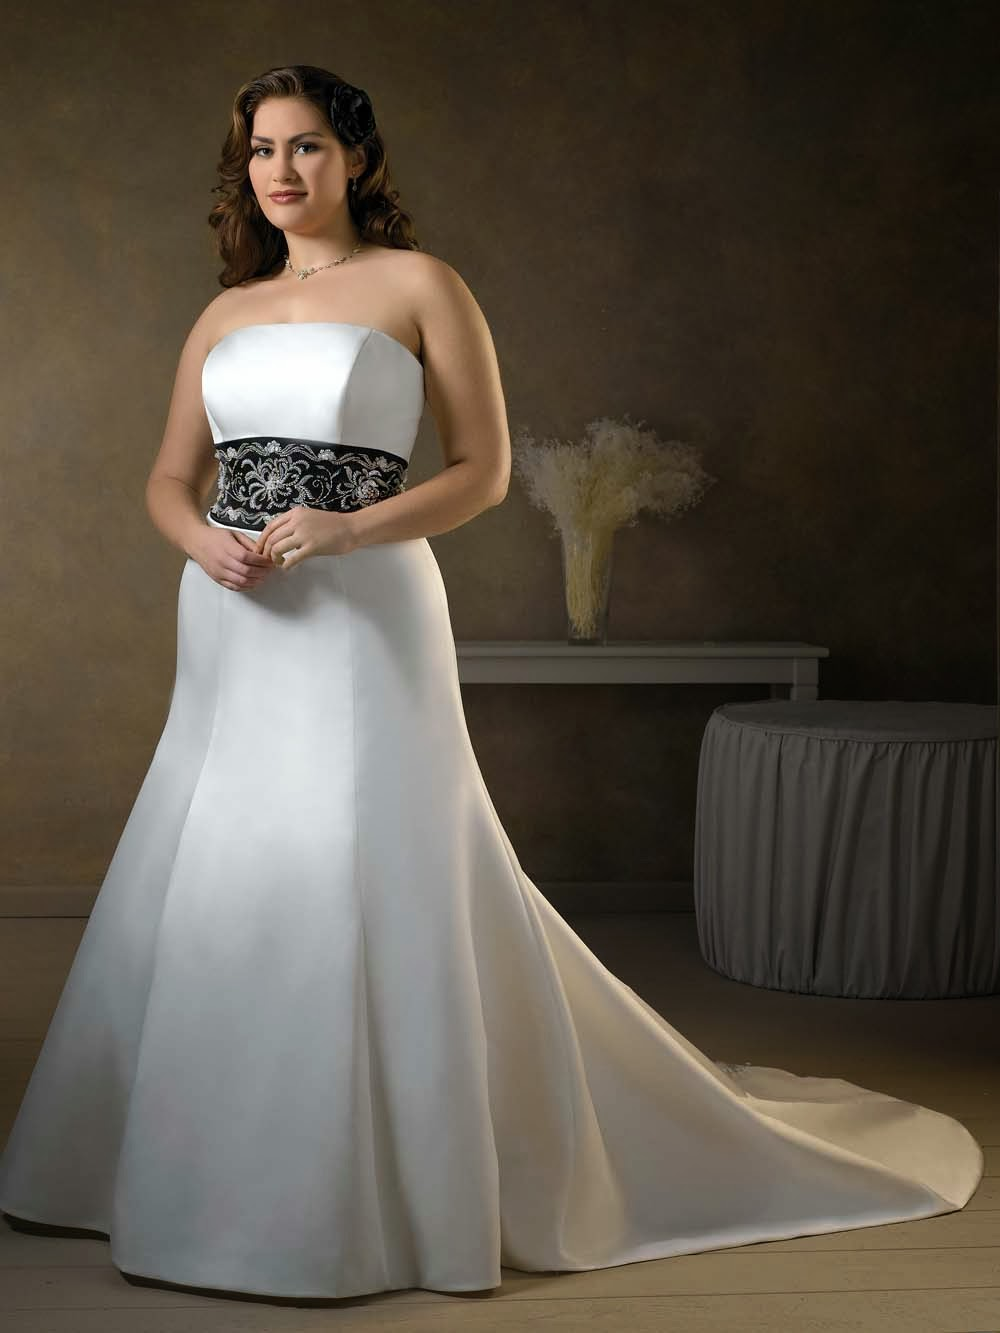 Affordable Wedding Gowns: USED WEDDING GOWN : GET HIGH QUALITY PLUS SIZE DRESS WITH